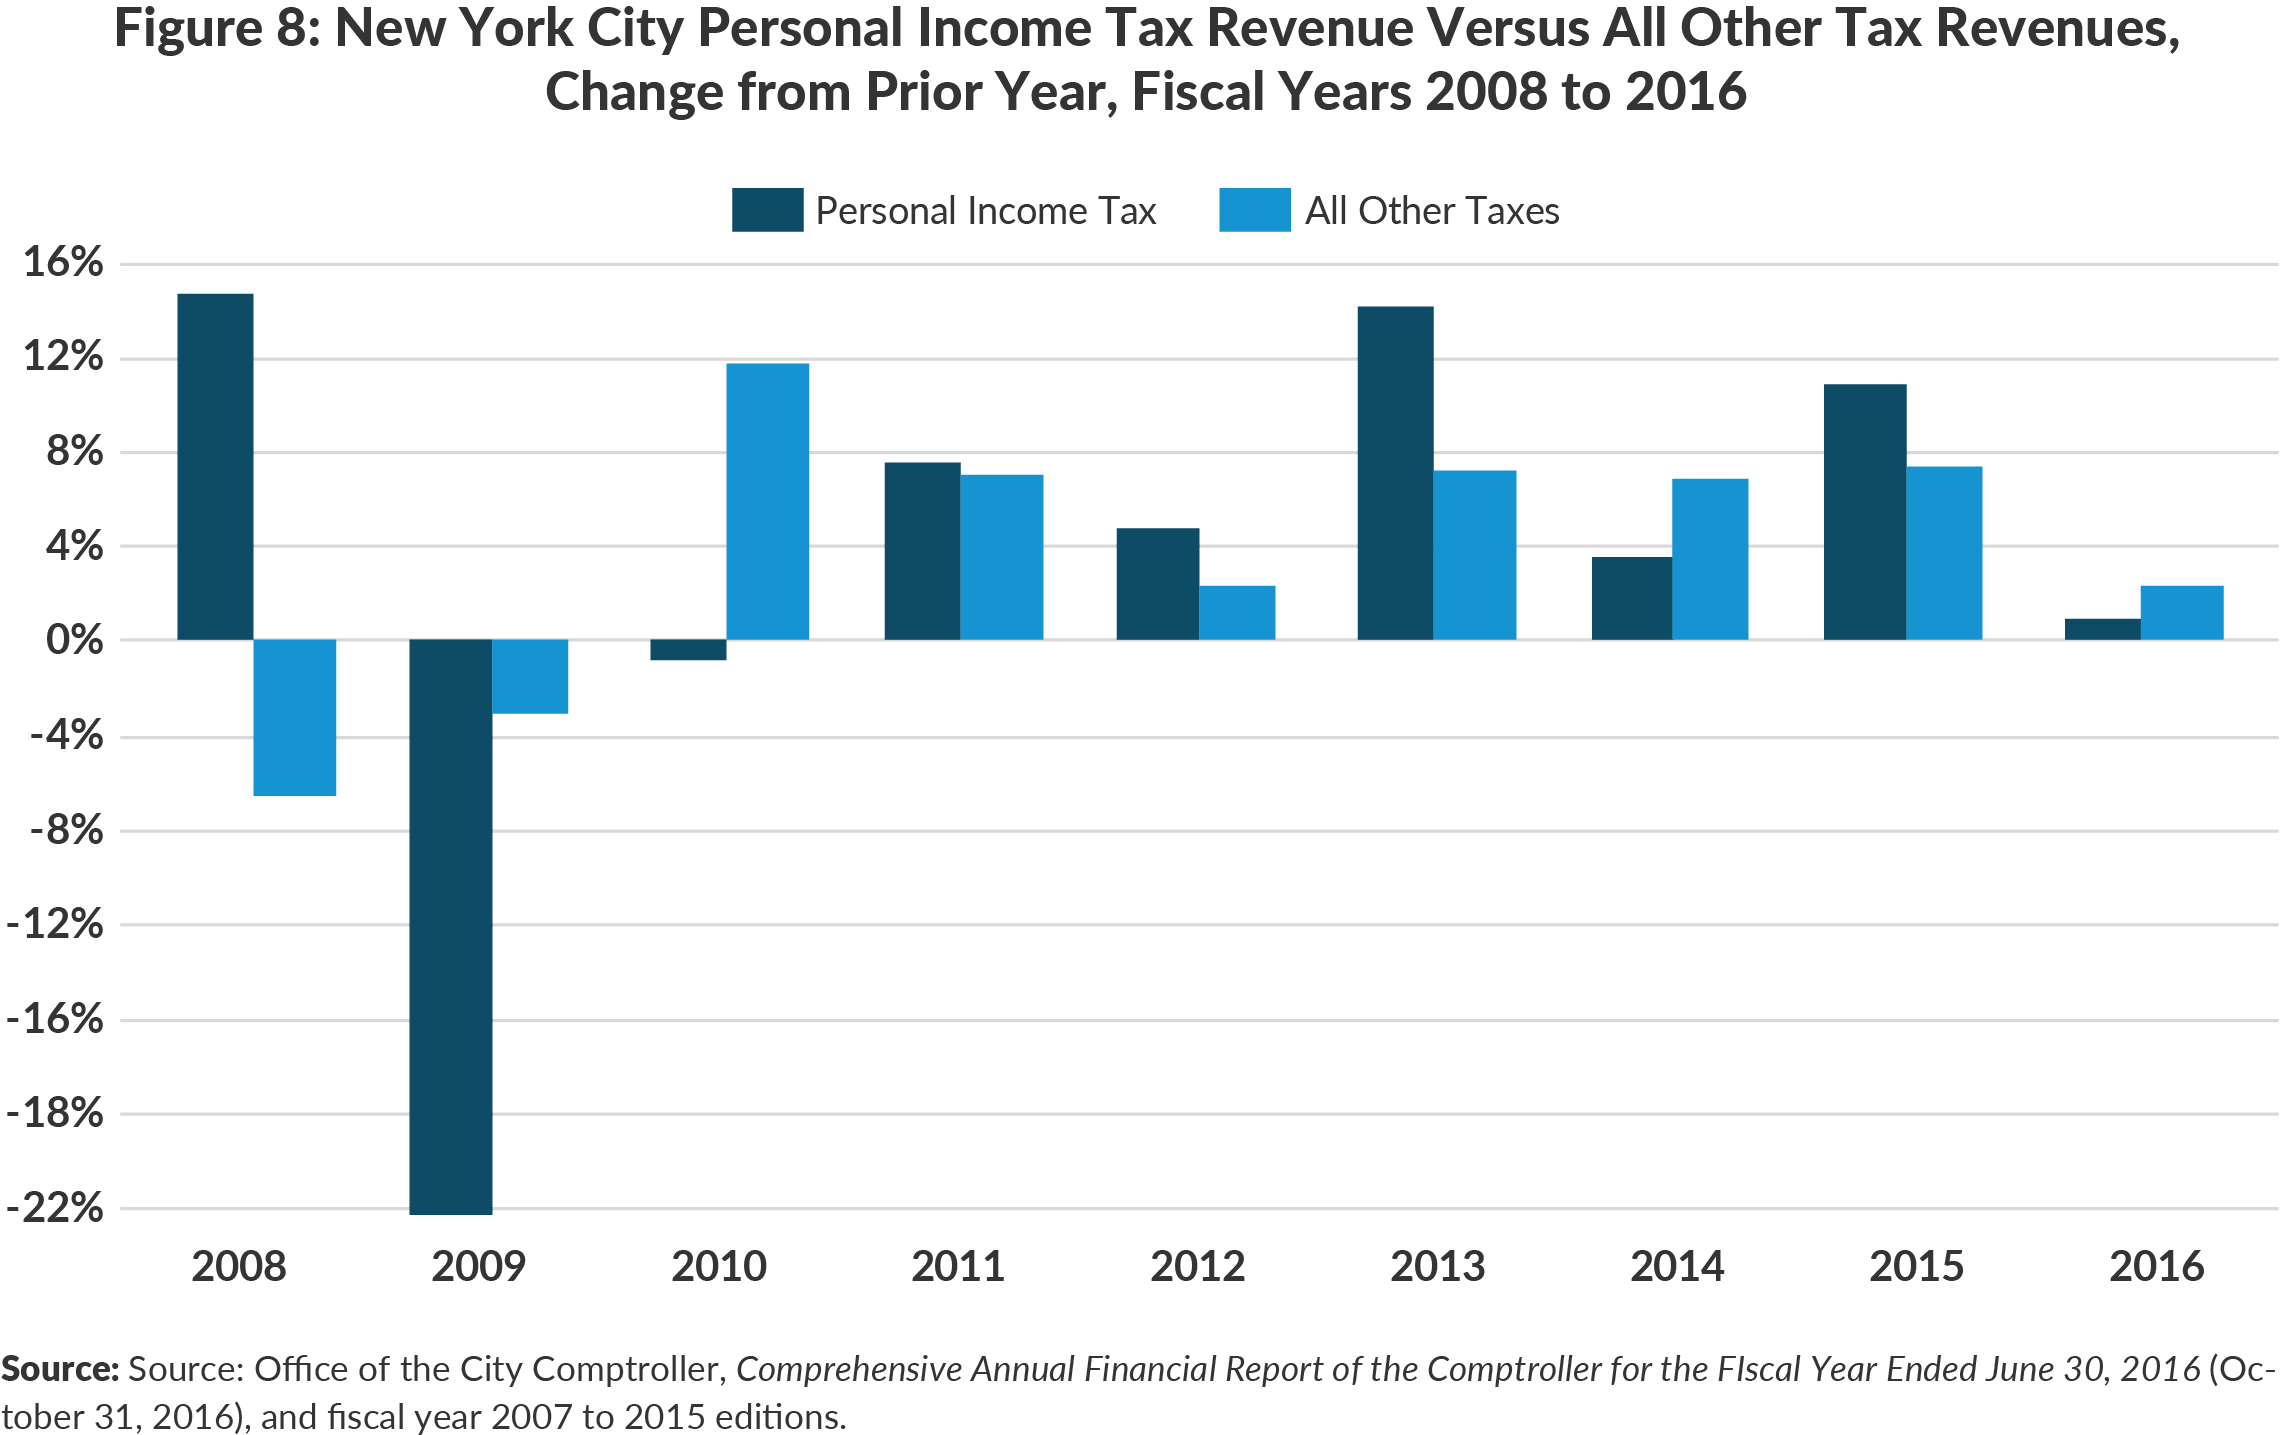 Figure 8: New York City Personal Income Tax Revenue Versus All Other Tax Revenues, Change from Prior Year, Fiscal Years 2008 to 2016